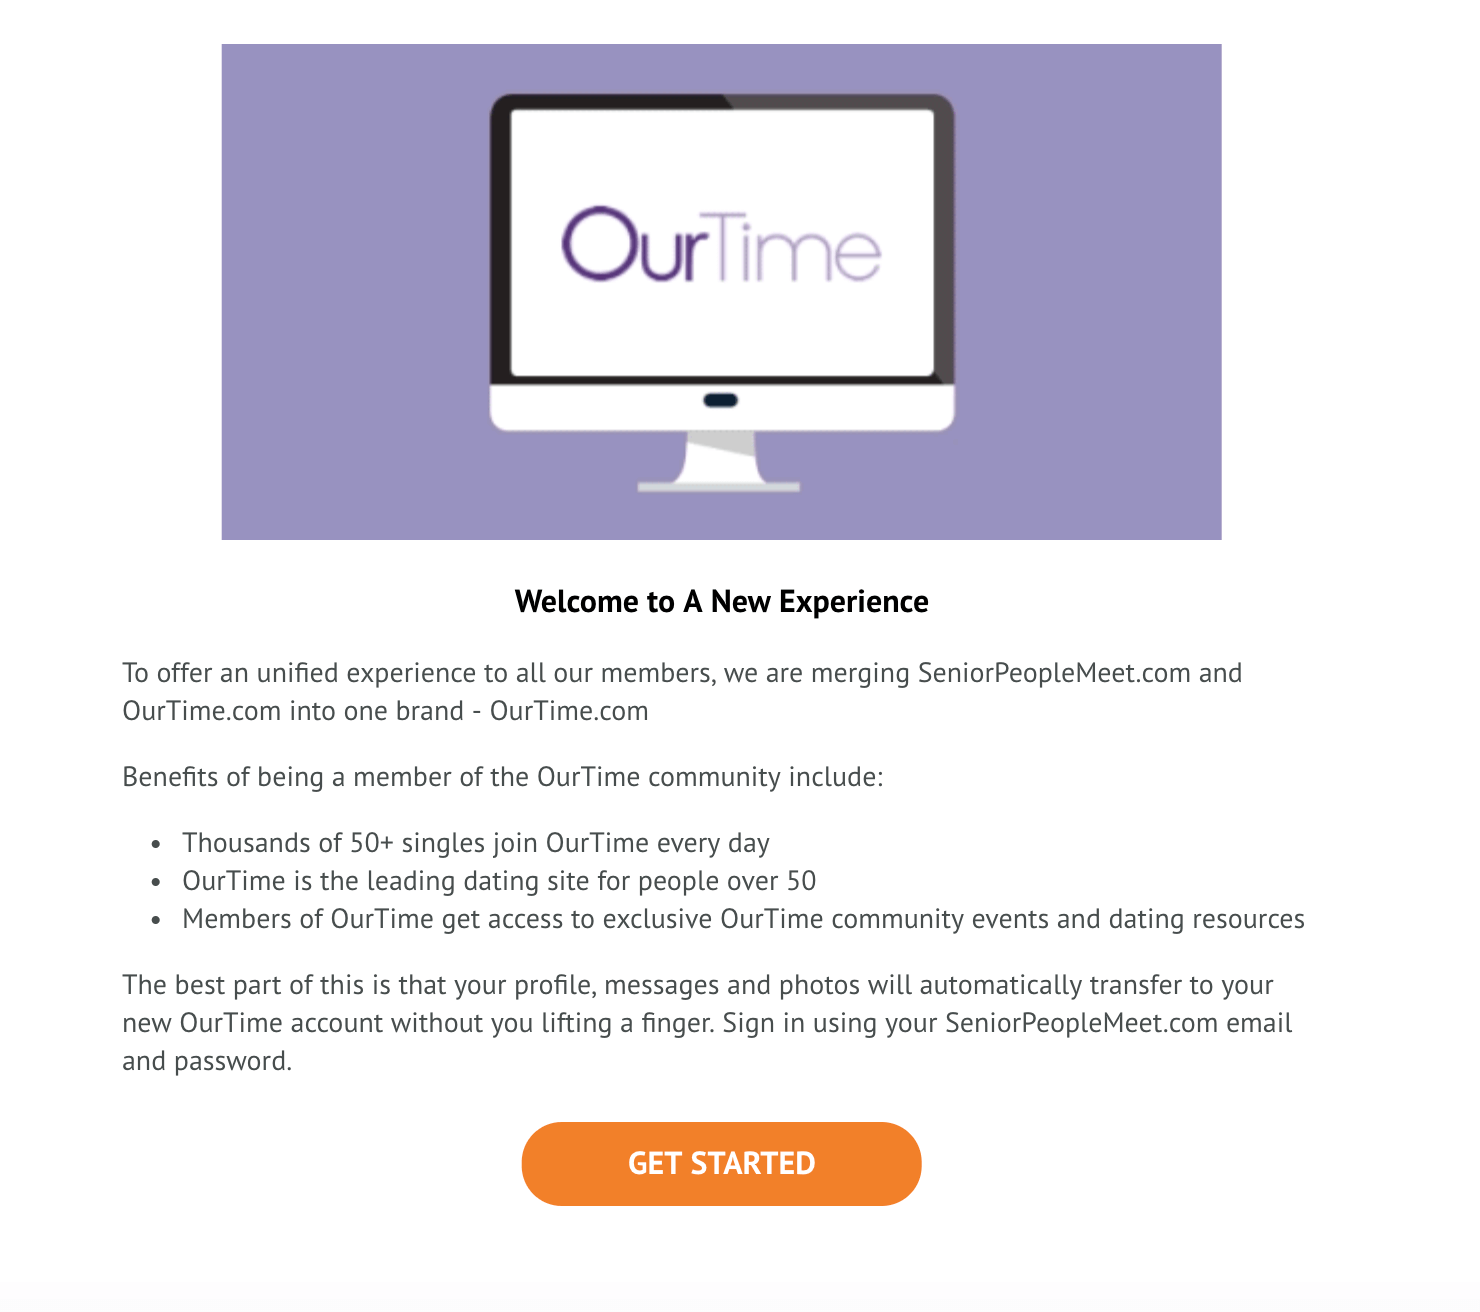 OurTime Review September 2019 - Scammers or lifetime